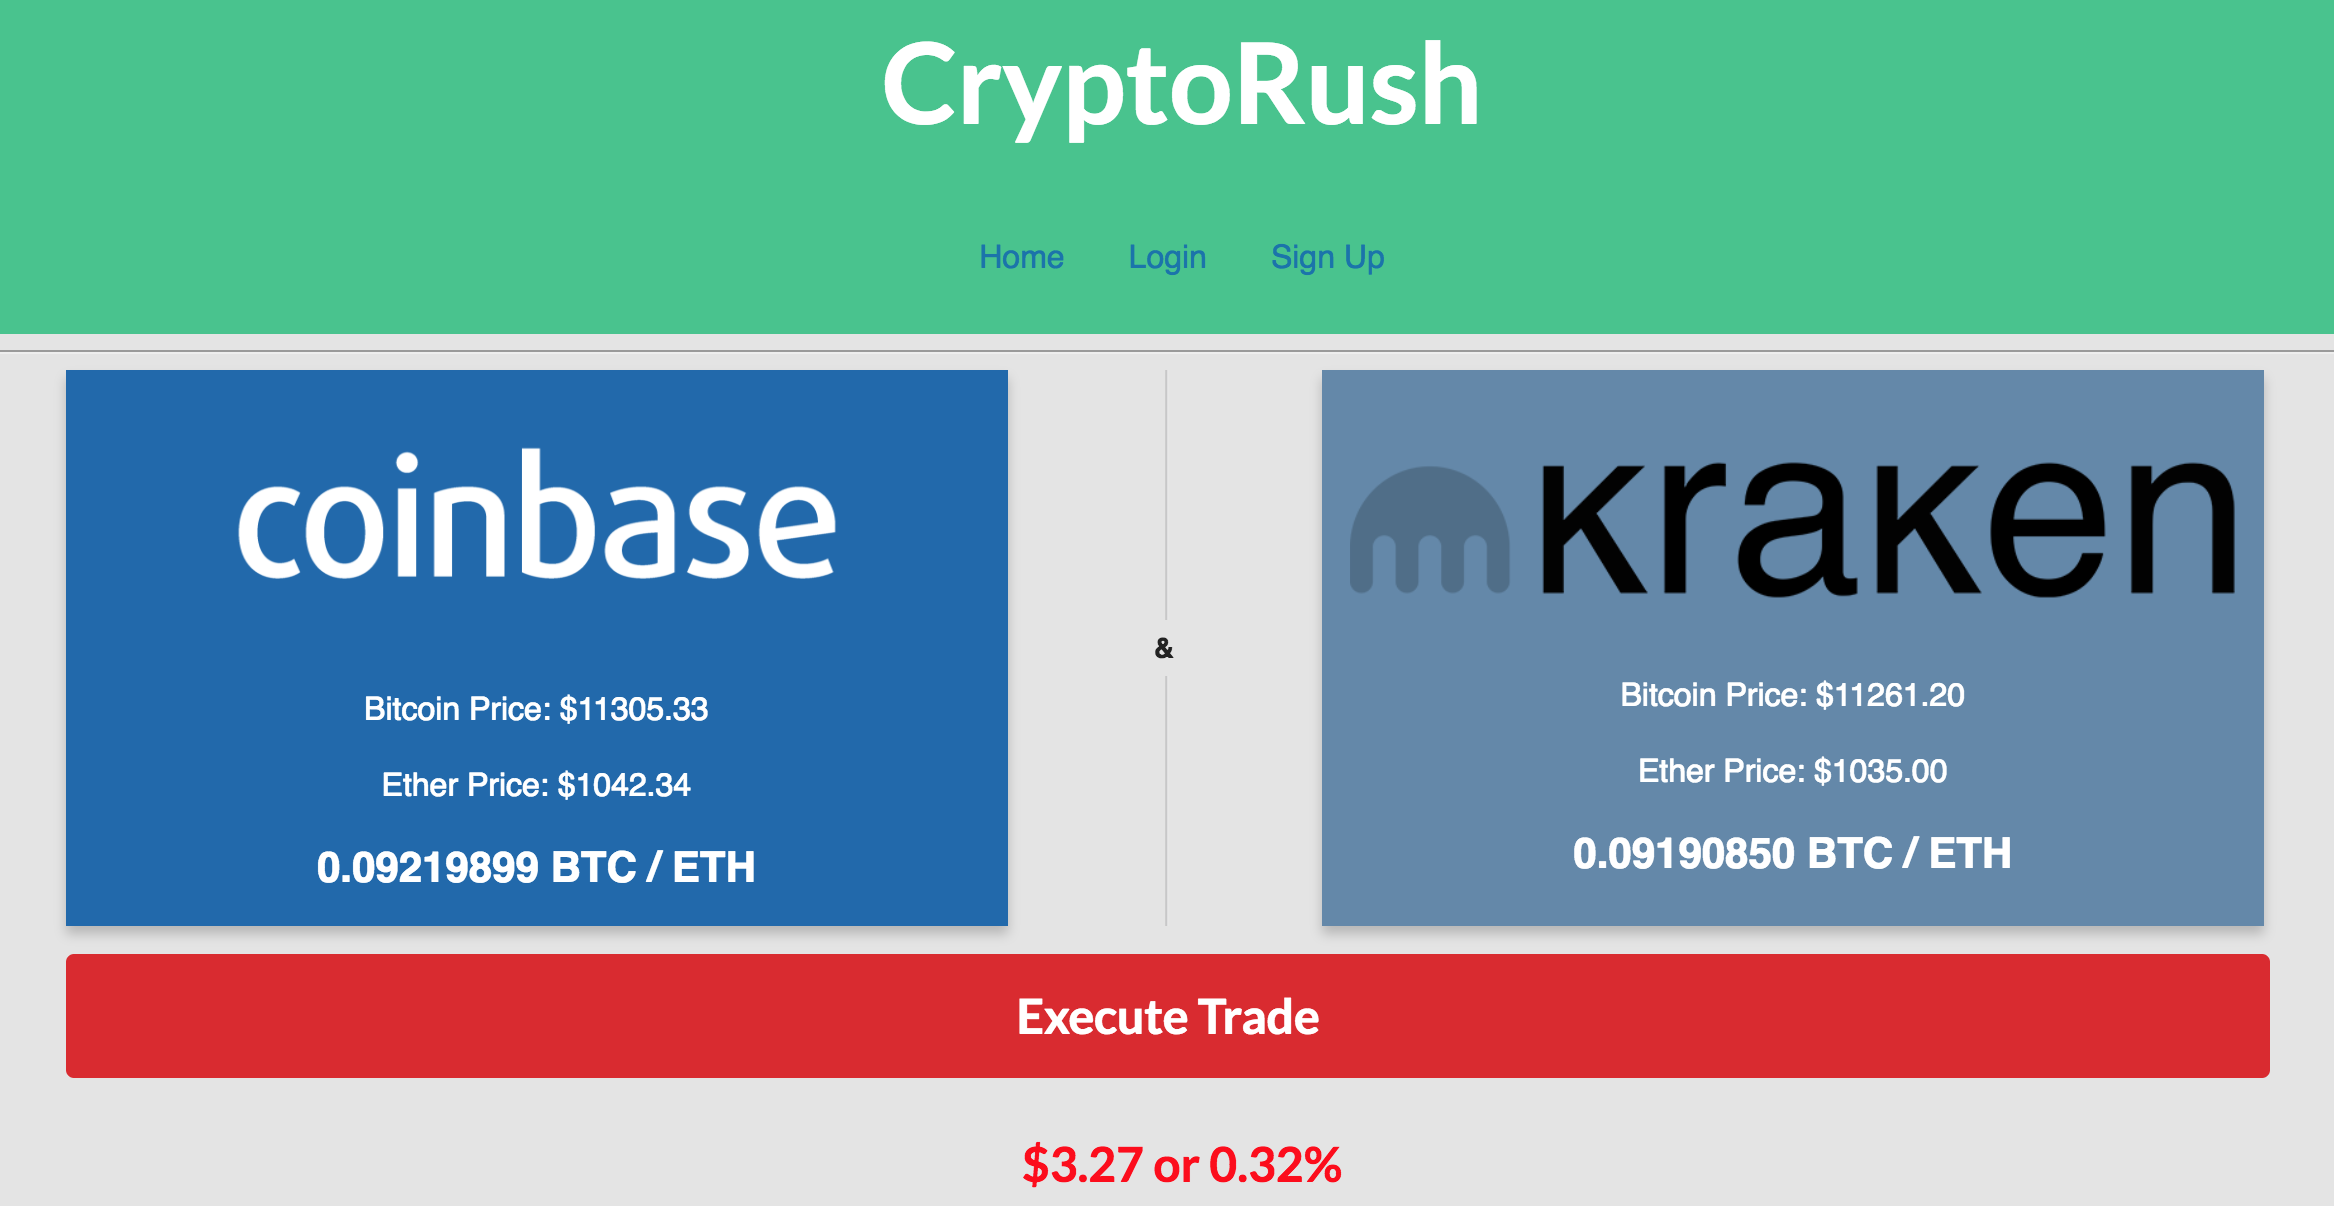 Using Chart js to graph cryptocurrency arbitrage